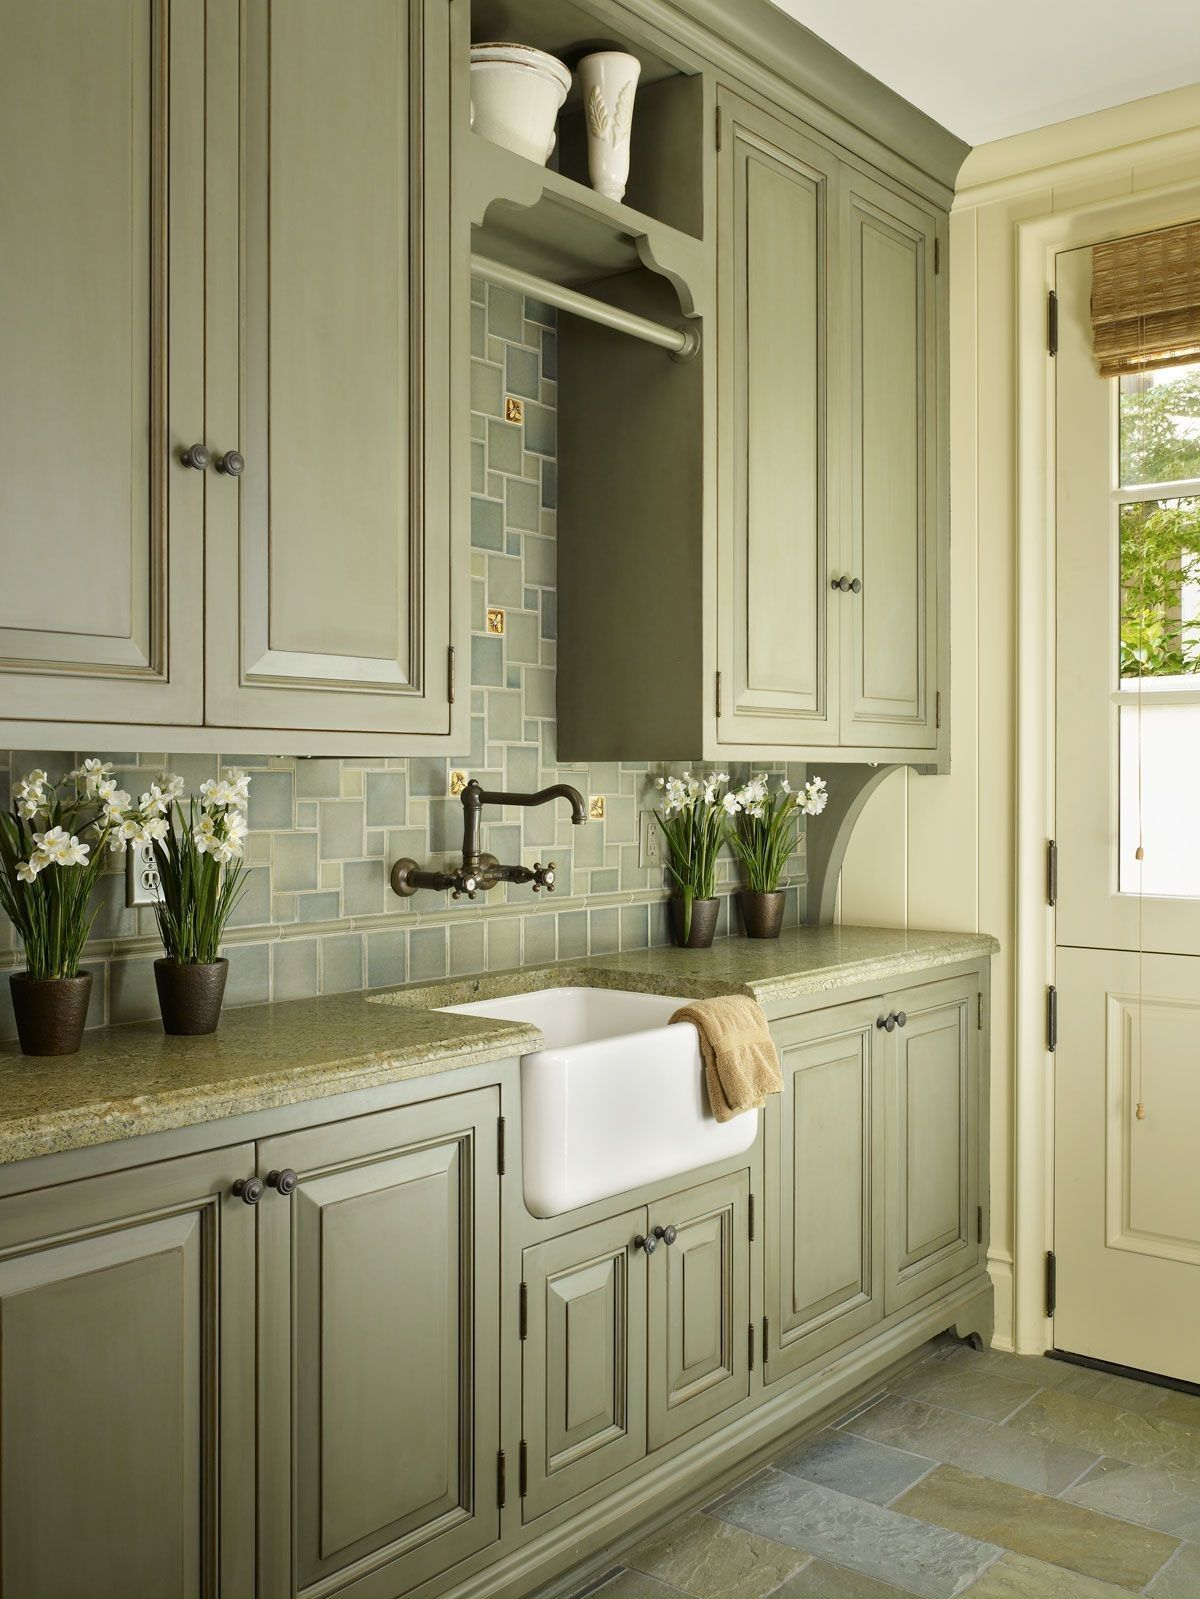 most popular country kitchen ideas for small homes 9214456983 countrykitchenideasforsmall on kitchen cabinet color ideas id=51283